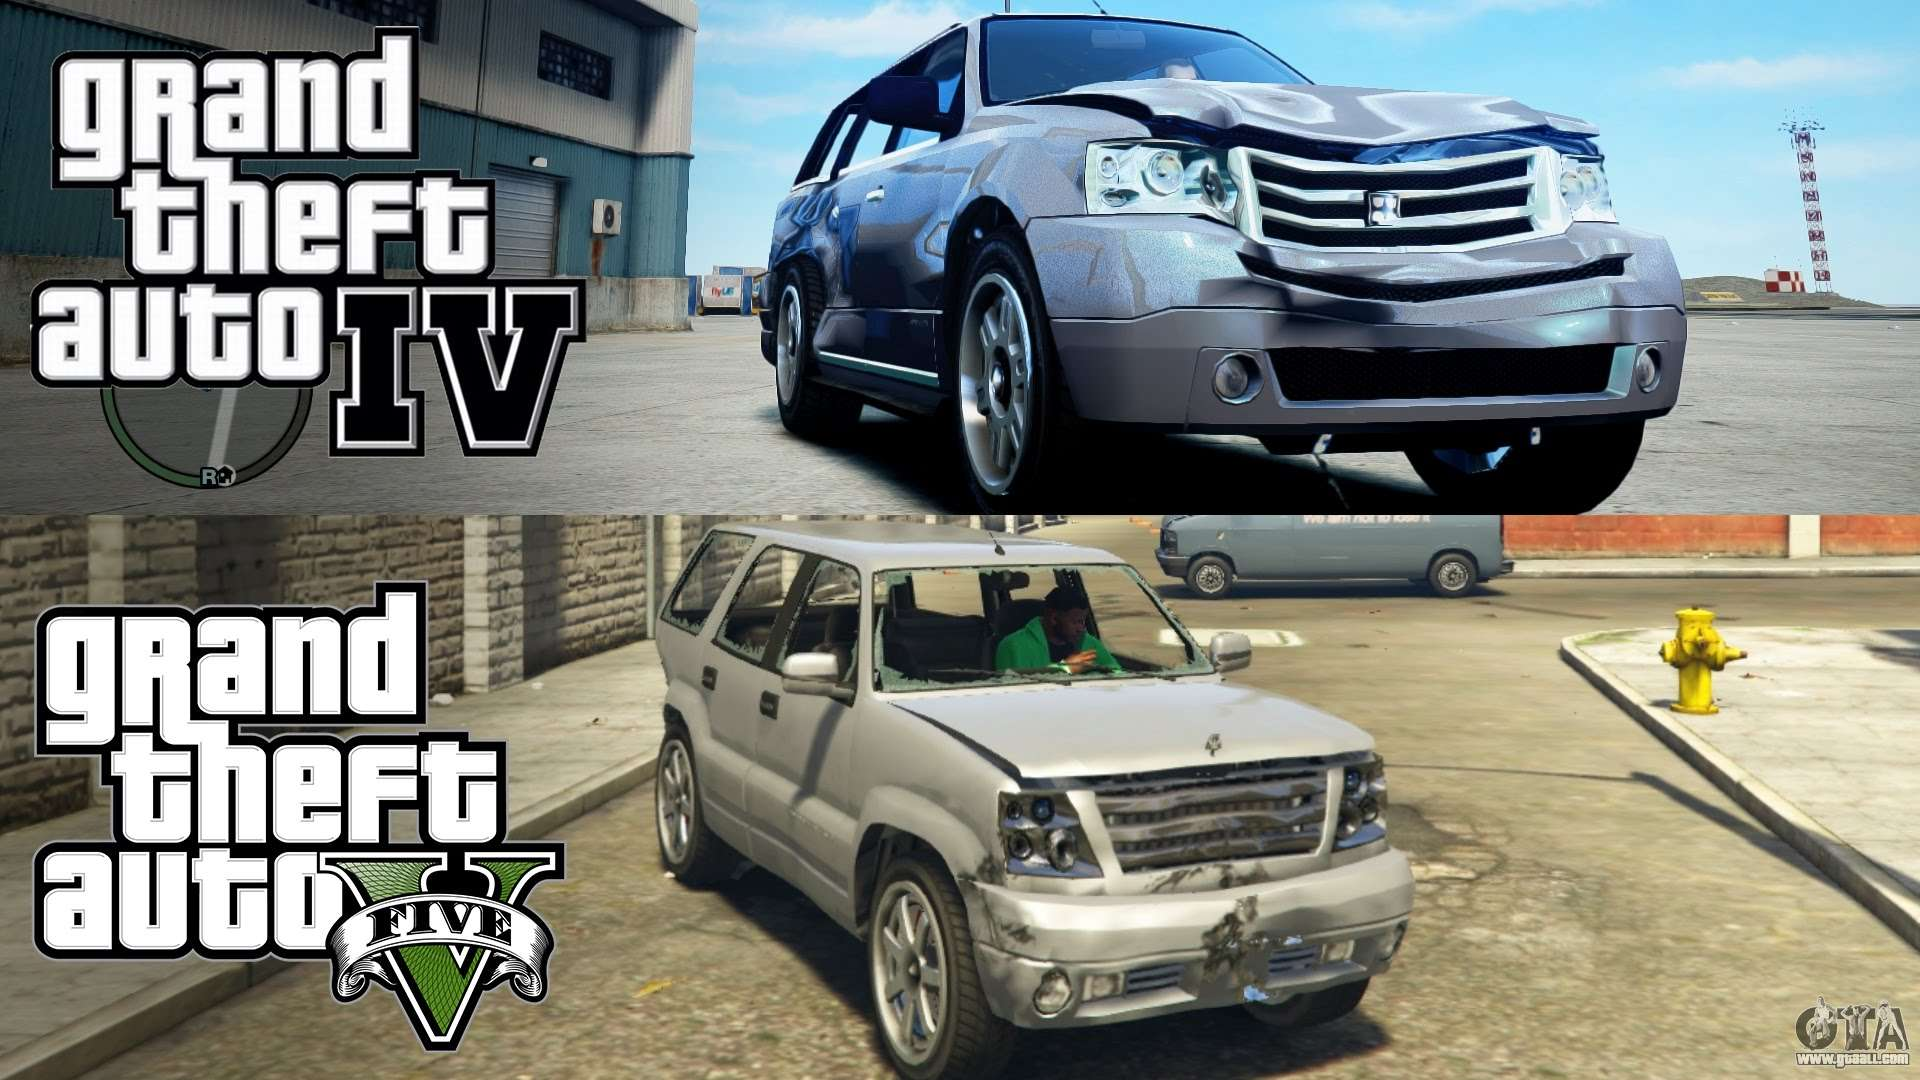 Comparison of the physics and gameplay of GTA 5 and GTA 4